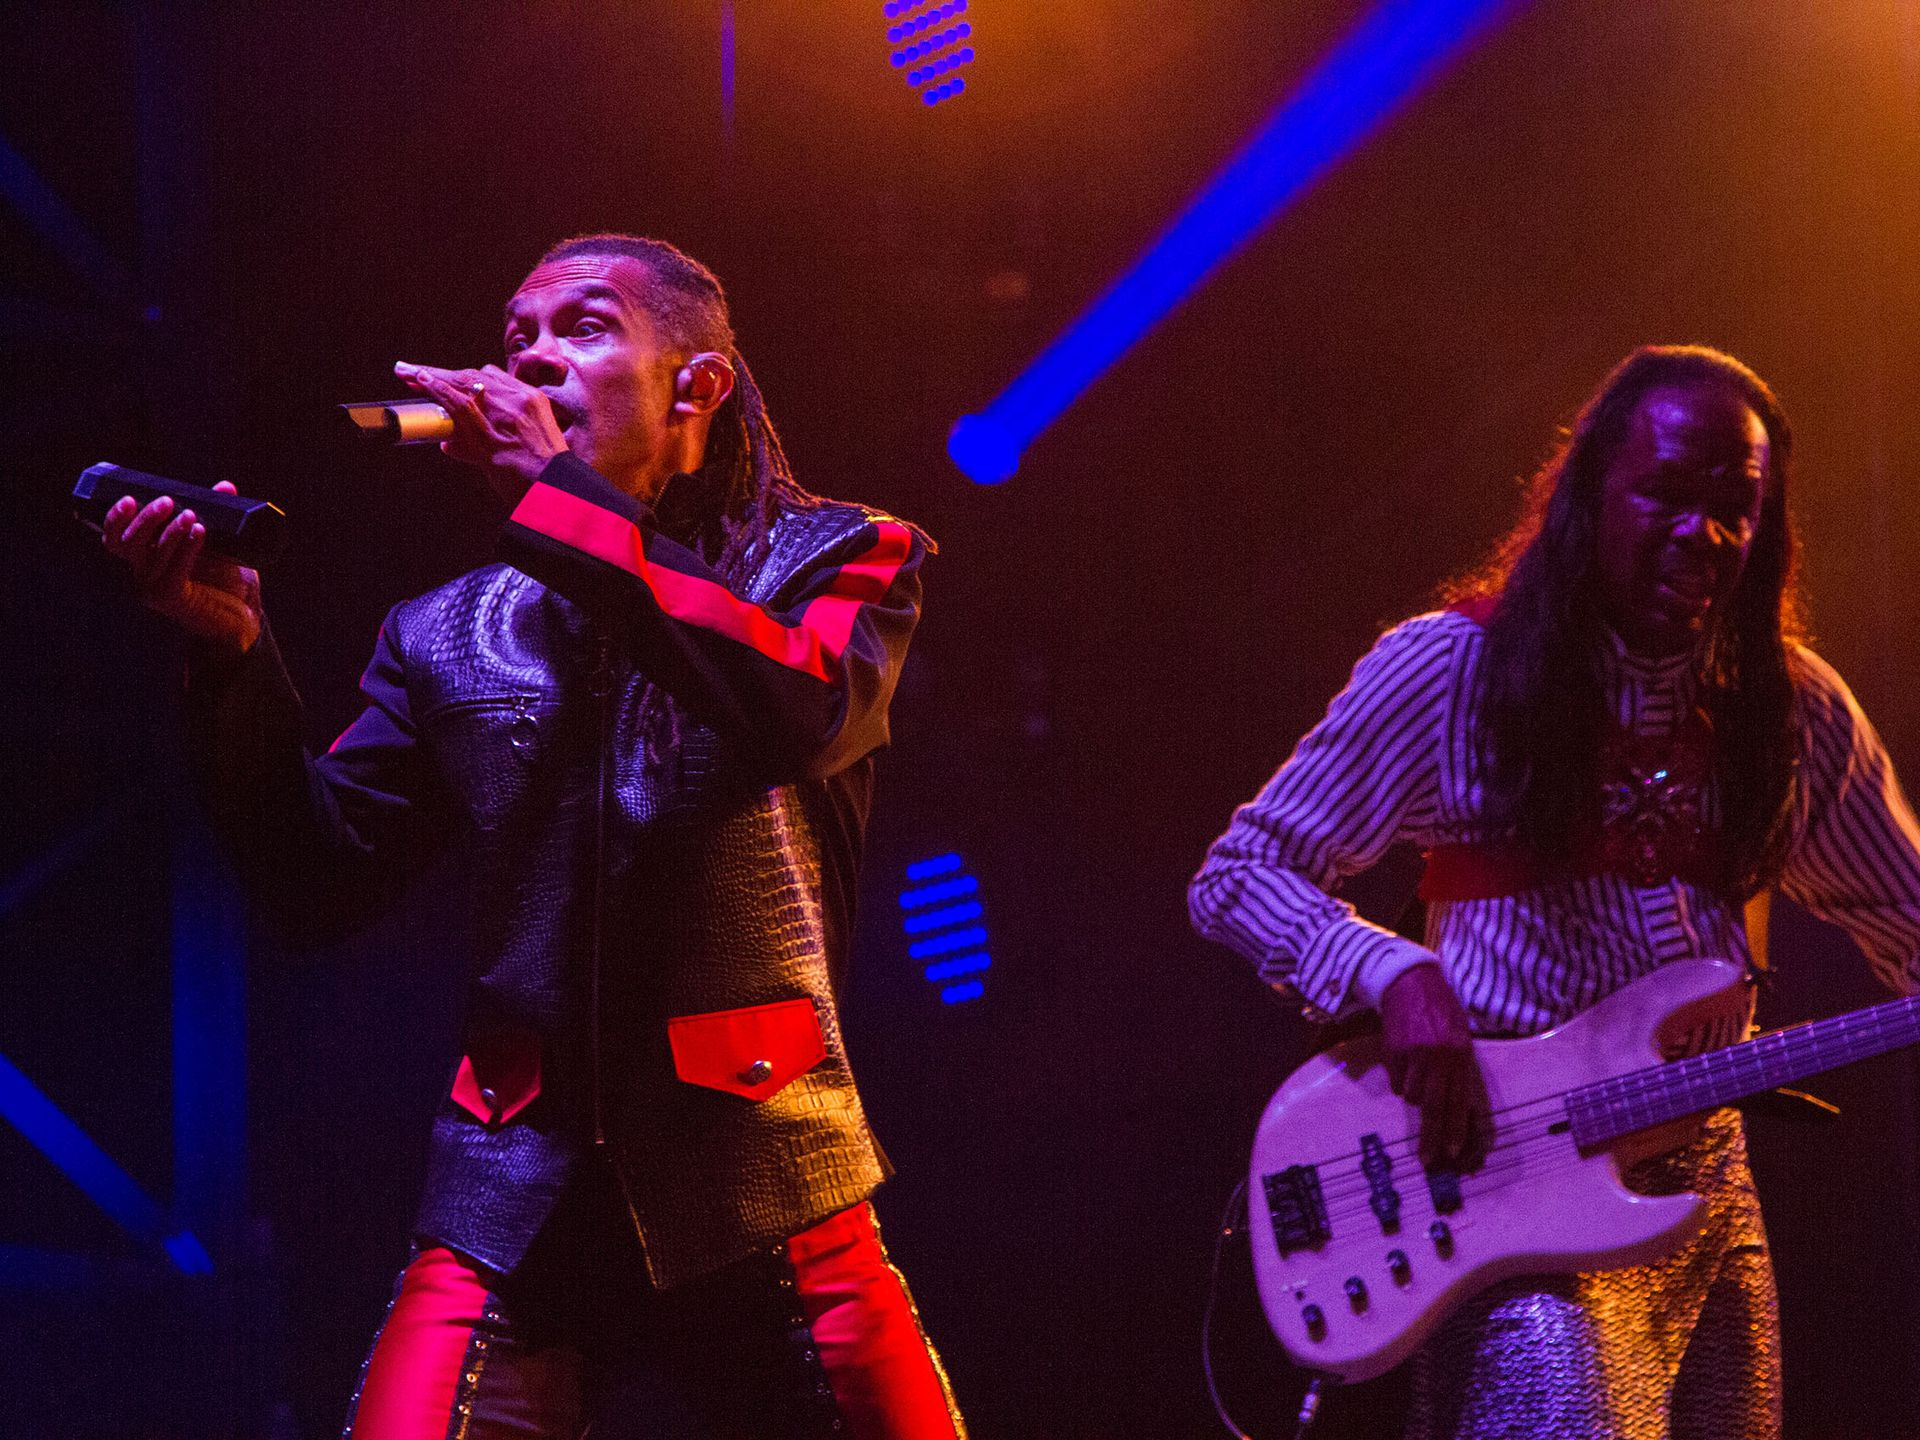 B. David Whitworth, left, and Verdine White, right, of Earth, Wind and Fire perform at the Bonnaroo Music and Arts Festival in Manchester, Tenn. on Friday,  June 12, 2015.  (MTSU Seigenthaler News Service / Matt Masters)